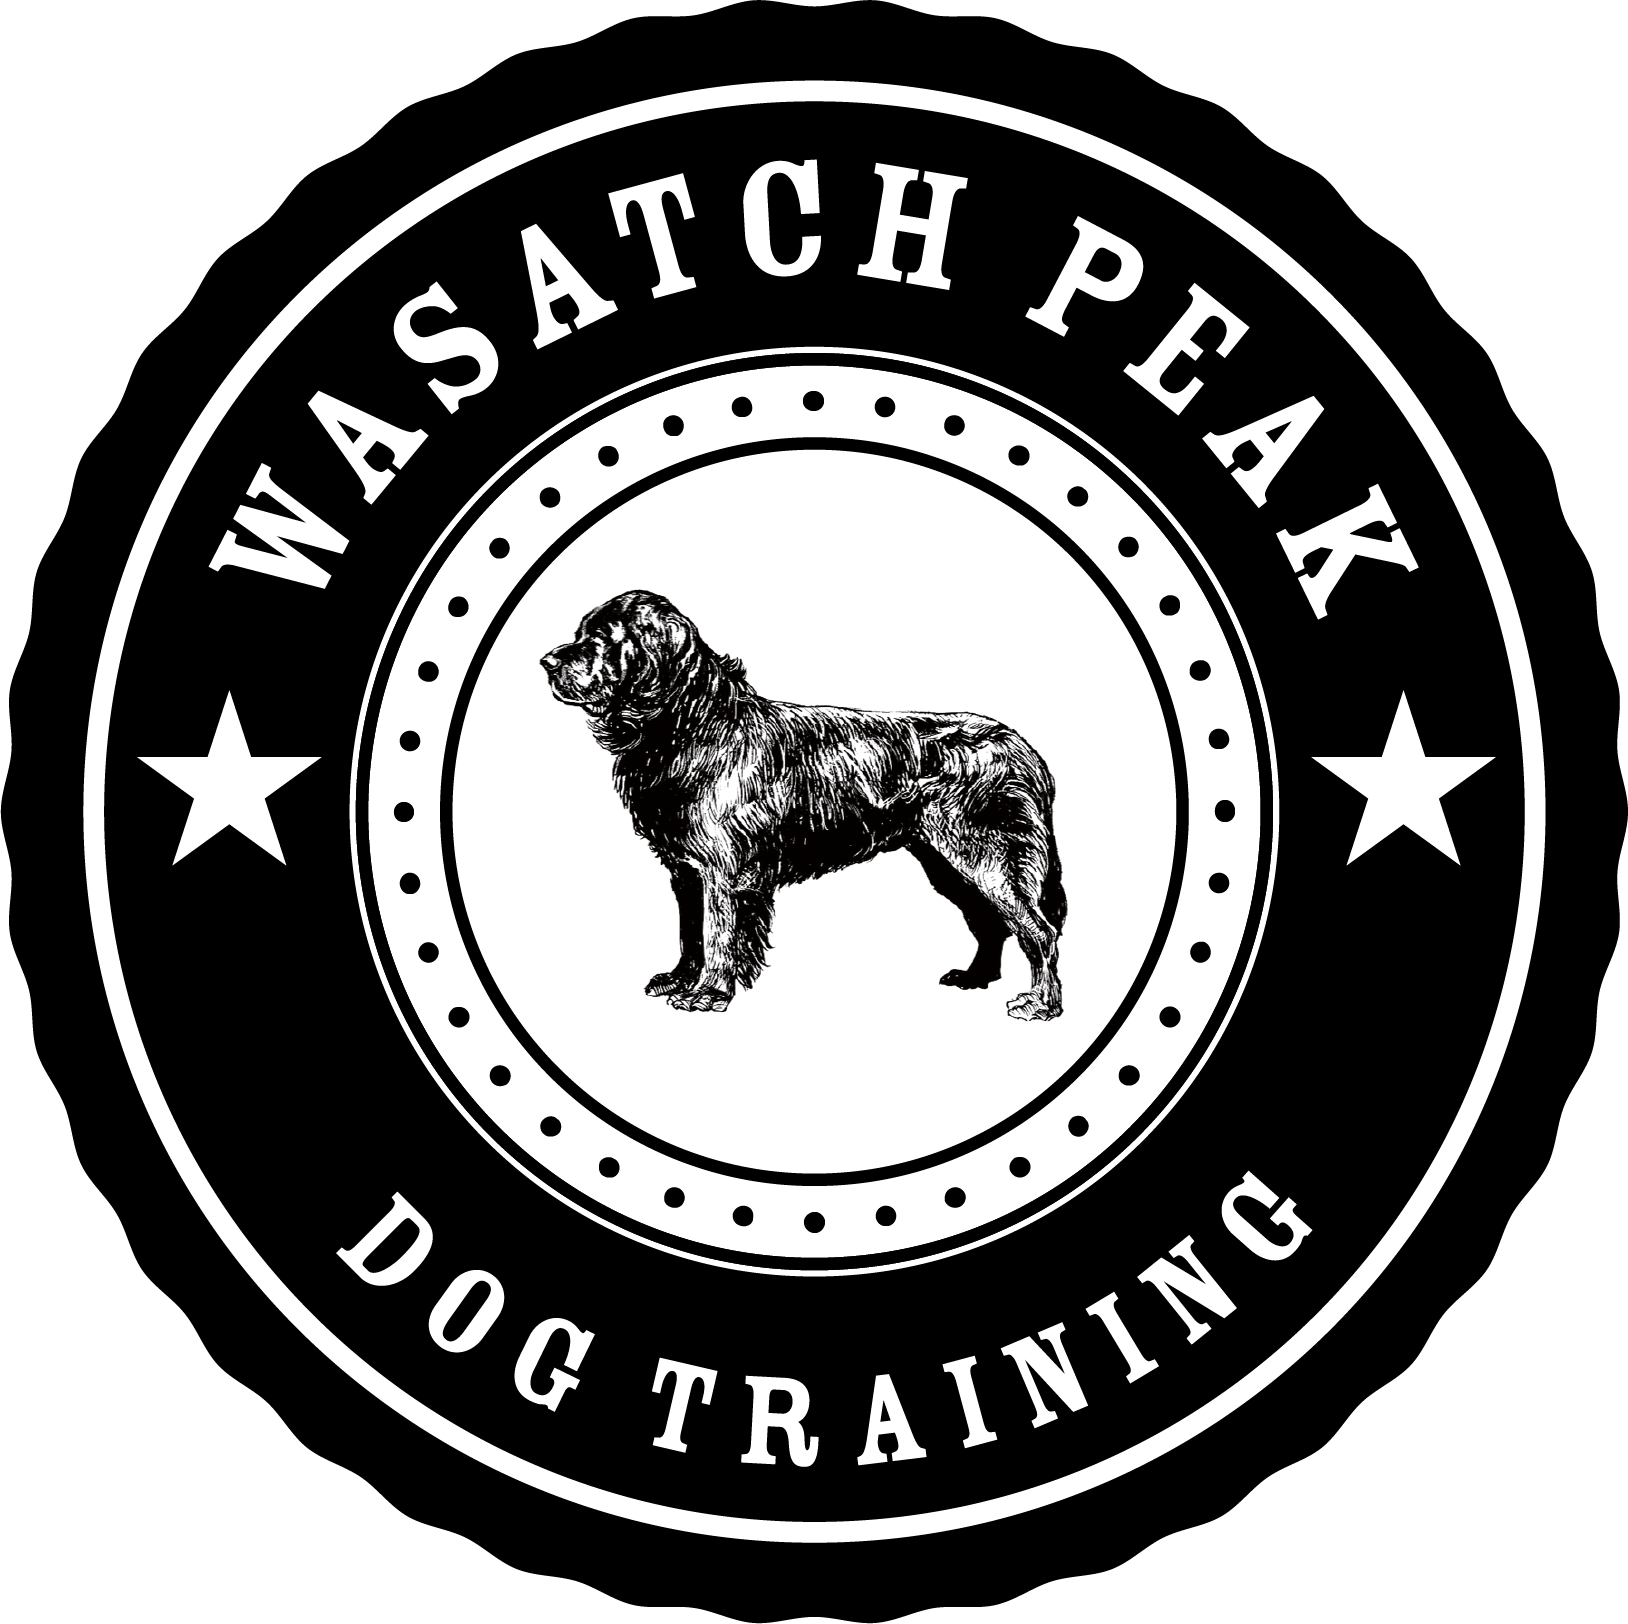 Wasatch Peak Dog Training